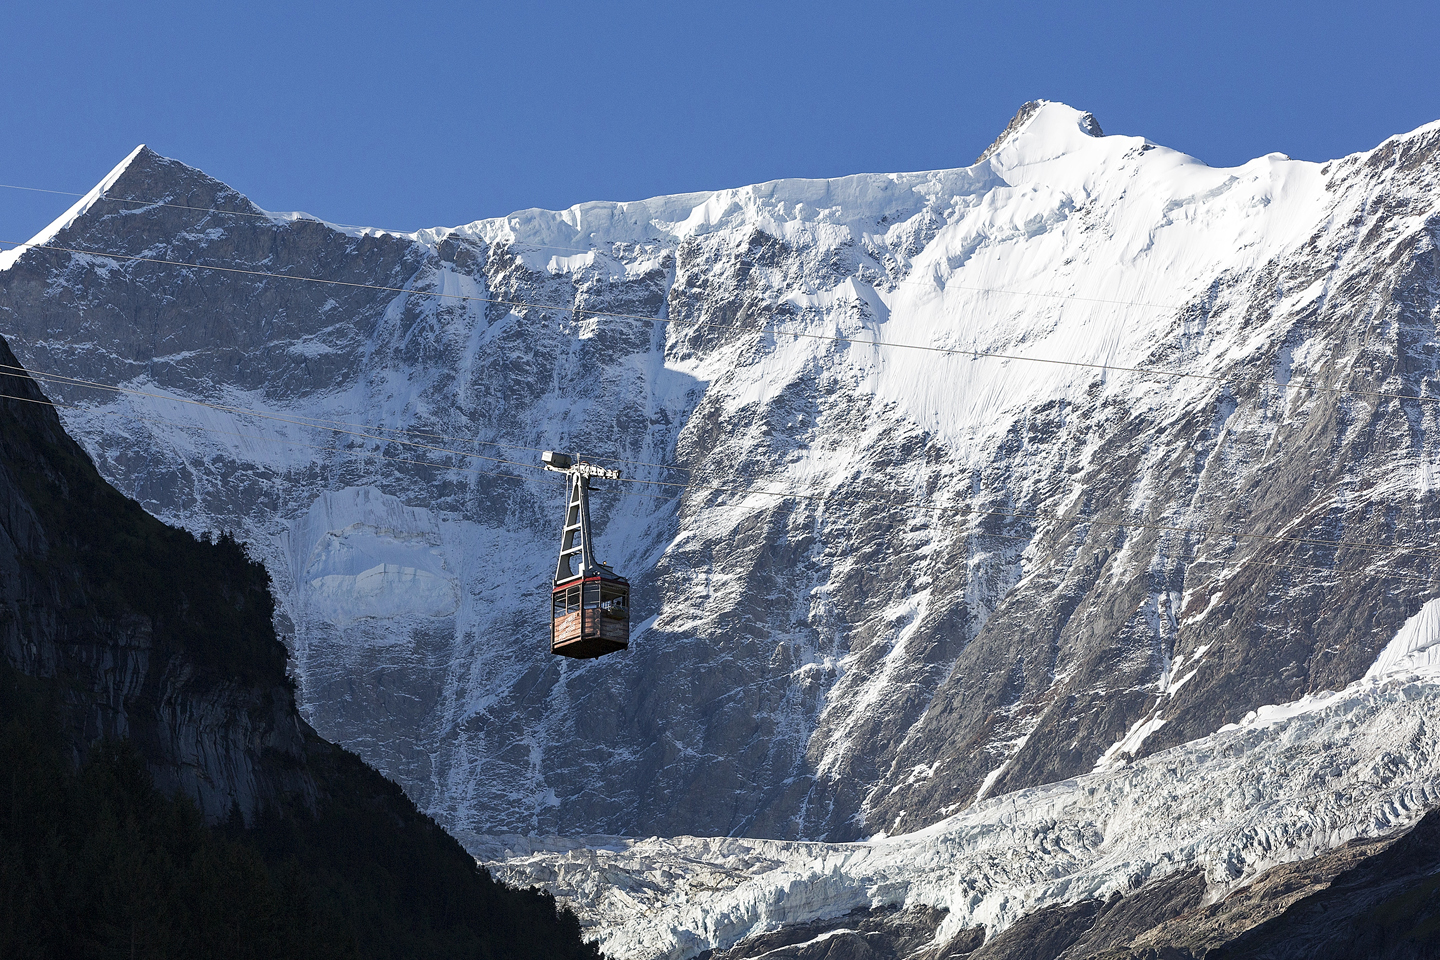 glacier covered mountain with a cable car near Grindelwald